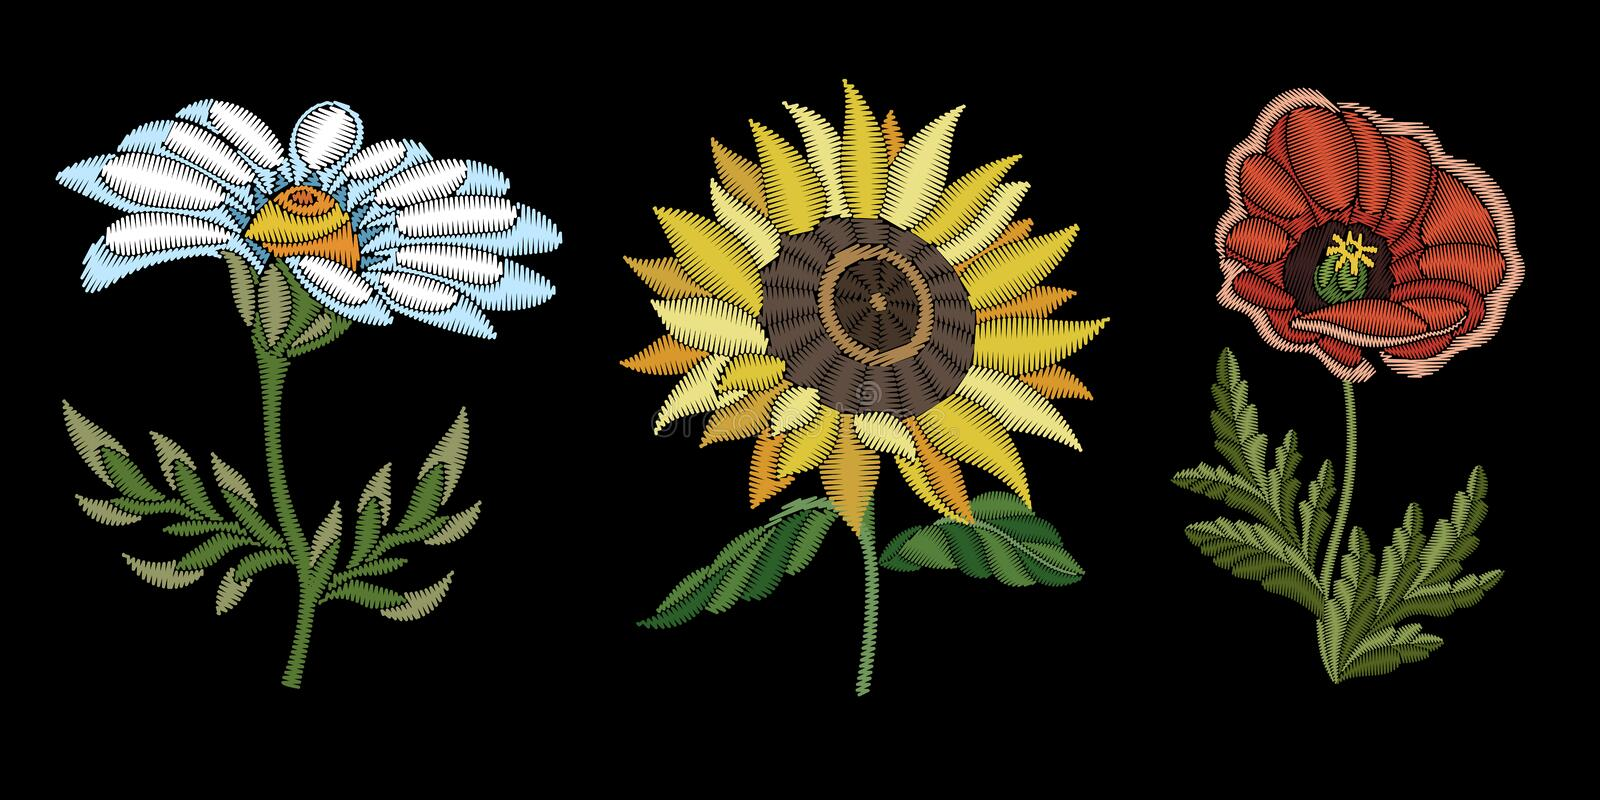 Embroidery floral fashion design royalty free illustration